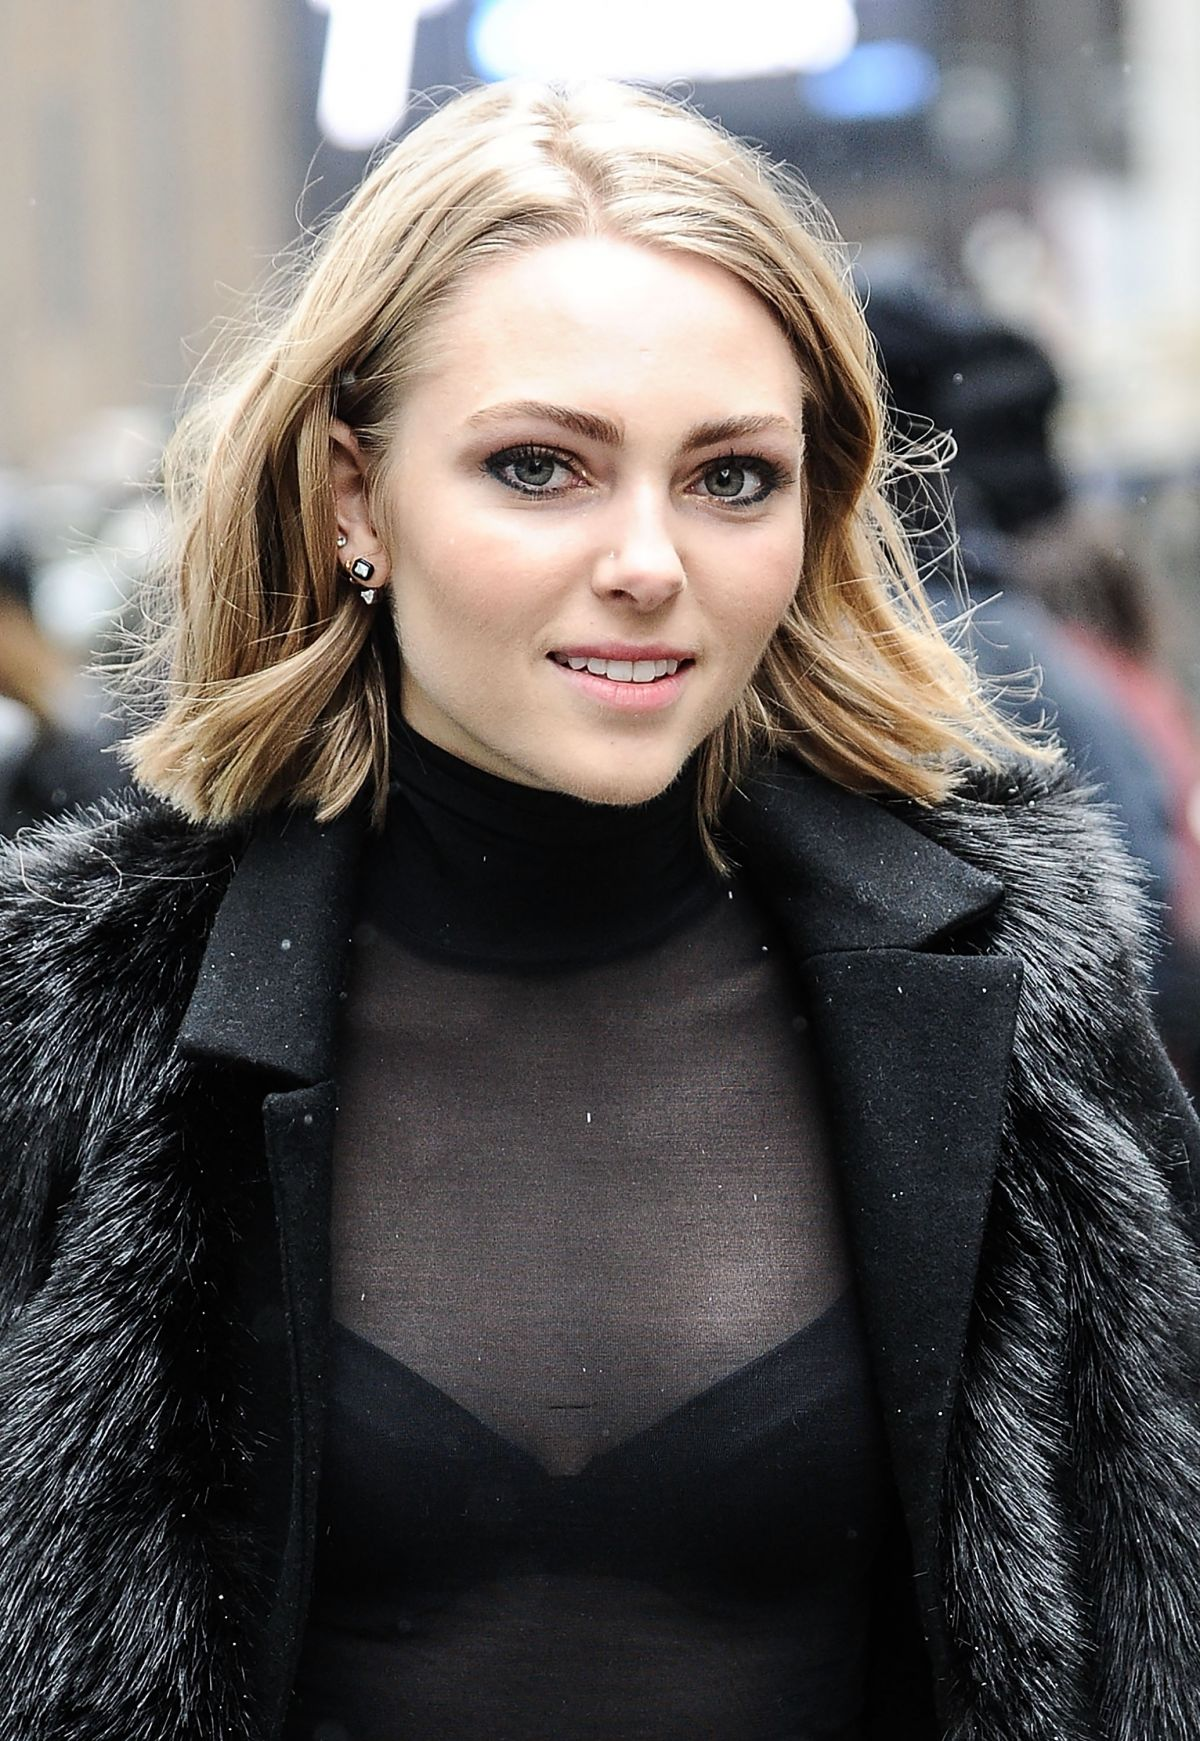 Annasophia Robb Out And About In New York 02 15 2016